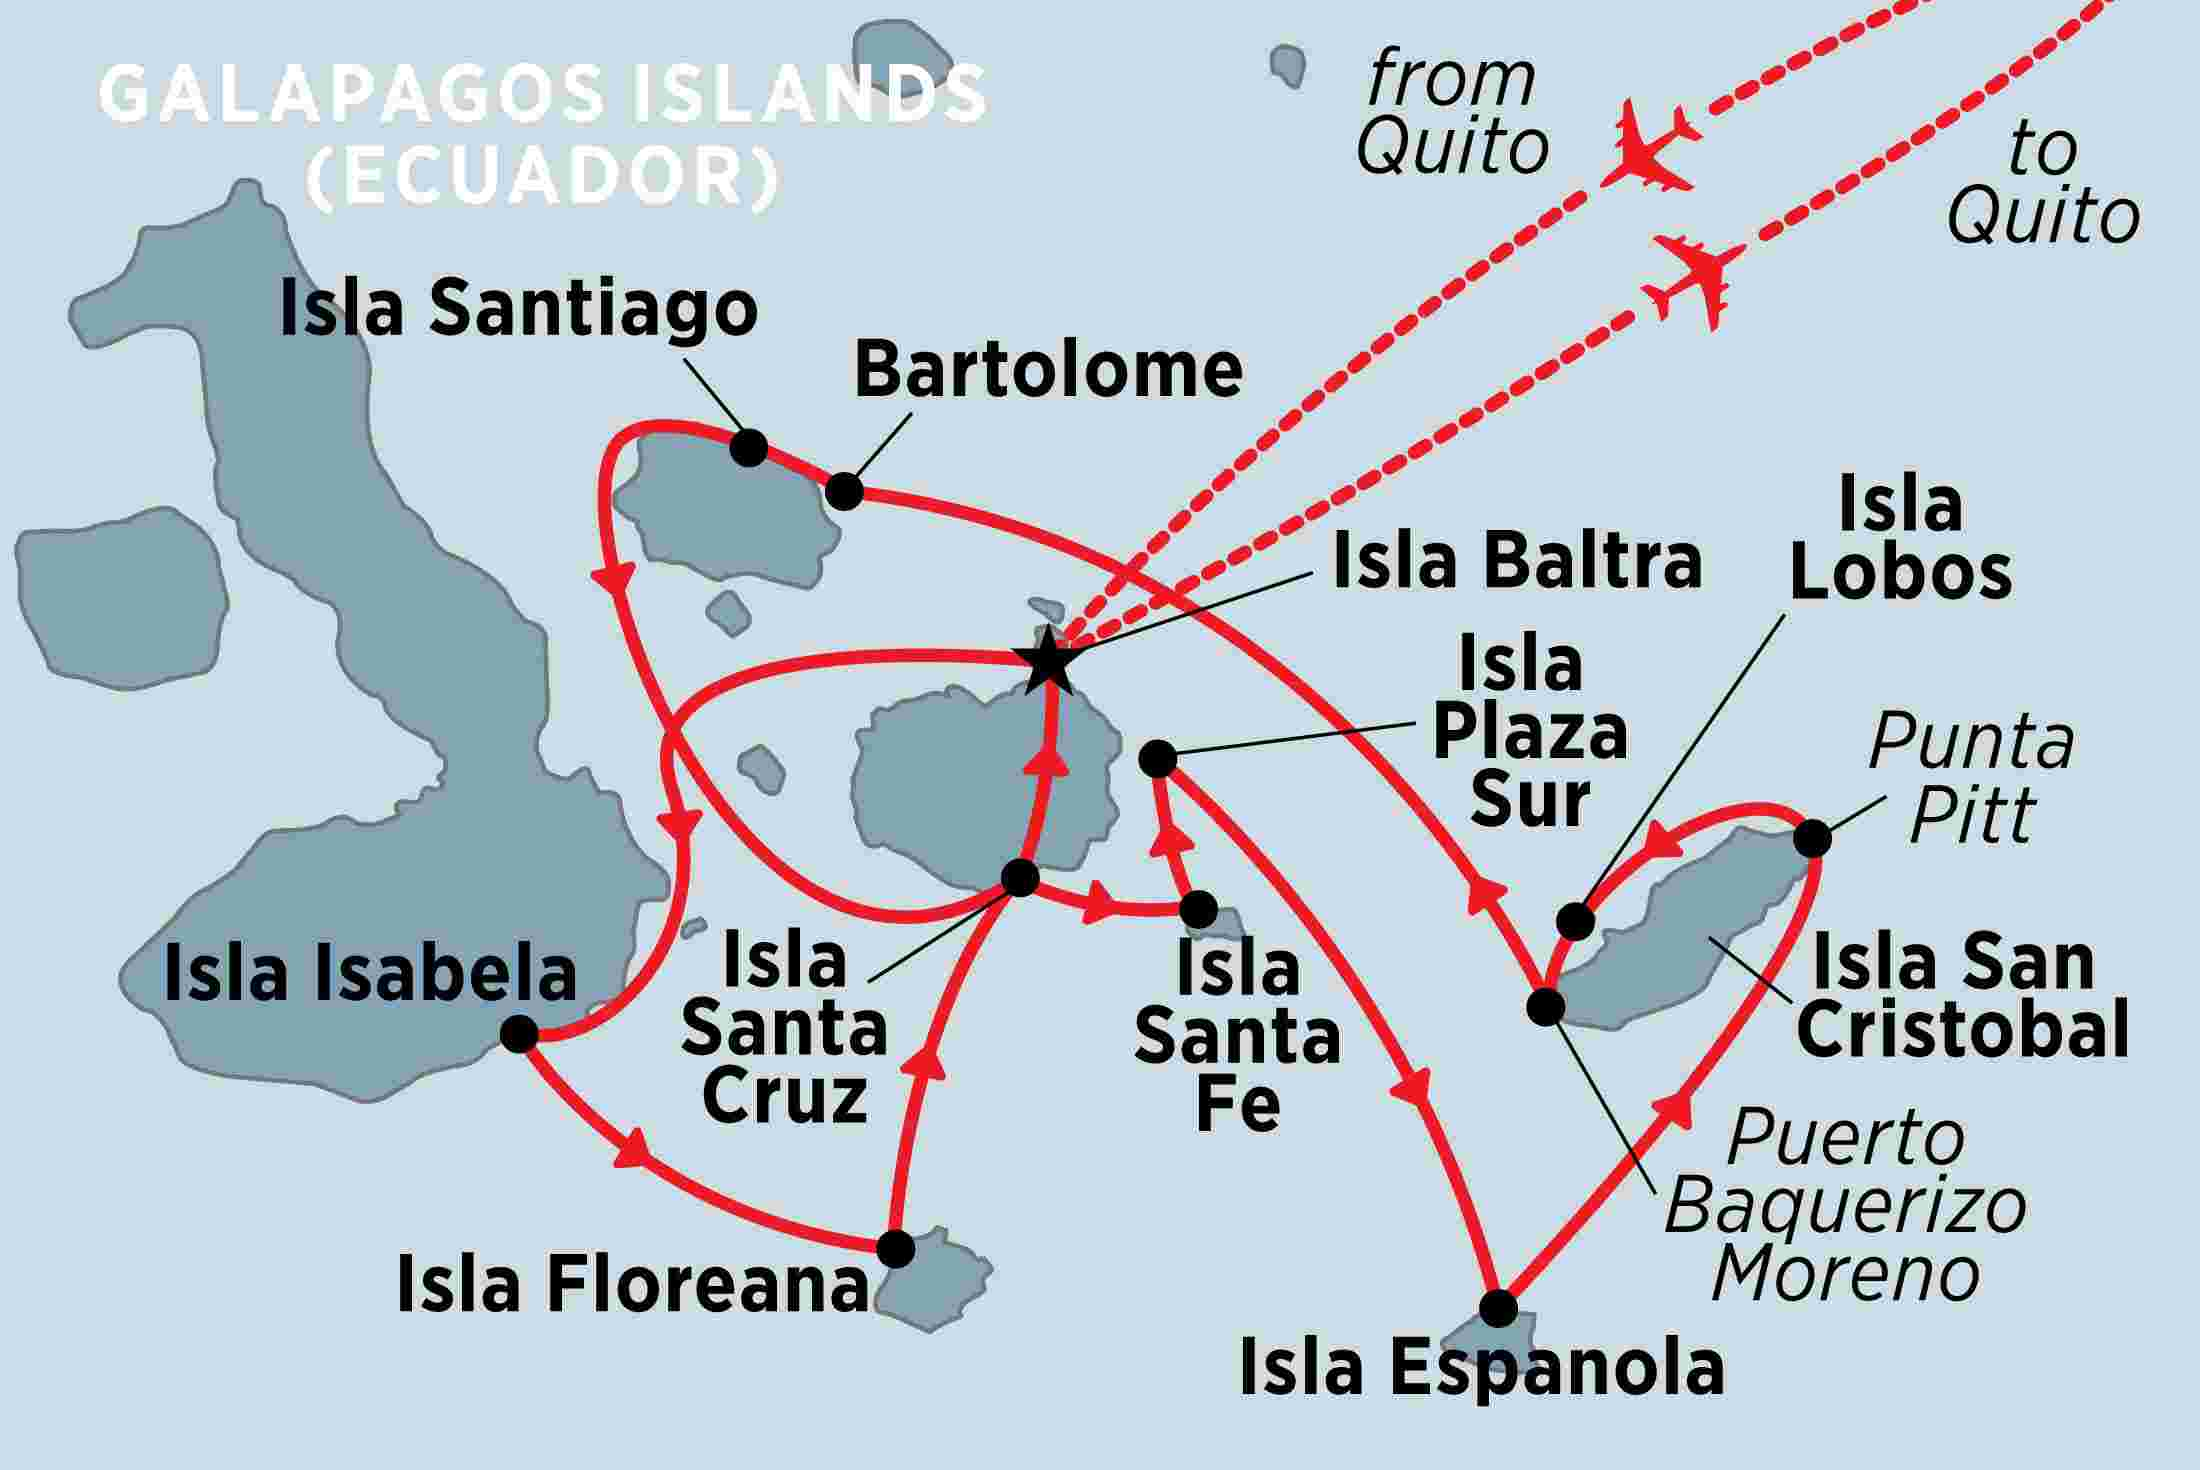 Treasures of the Galapagos: Western & Central Islands (Grand Queen on nameless island, baltra island, pinta island, tierra del fuego on map, africa map, fernandina island, greater antilles map, cocos islands, maldives map, ethiopia map, dominican republic map, bay of fundy, iguazu falls, europe map, luxembourg map, caribbean map, puerto baquerizo moreno, galapagos national park, strait of magellan map, iceland islands map, puerto ayora map, honduras map, peru map, netherlands antilles map, aleutian islands map, charles darwin research station, ha long bay, genovesa island, puerto ayora, atacama map, isabela island, central america map, madagascar map, bahamas map,